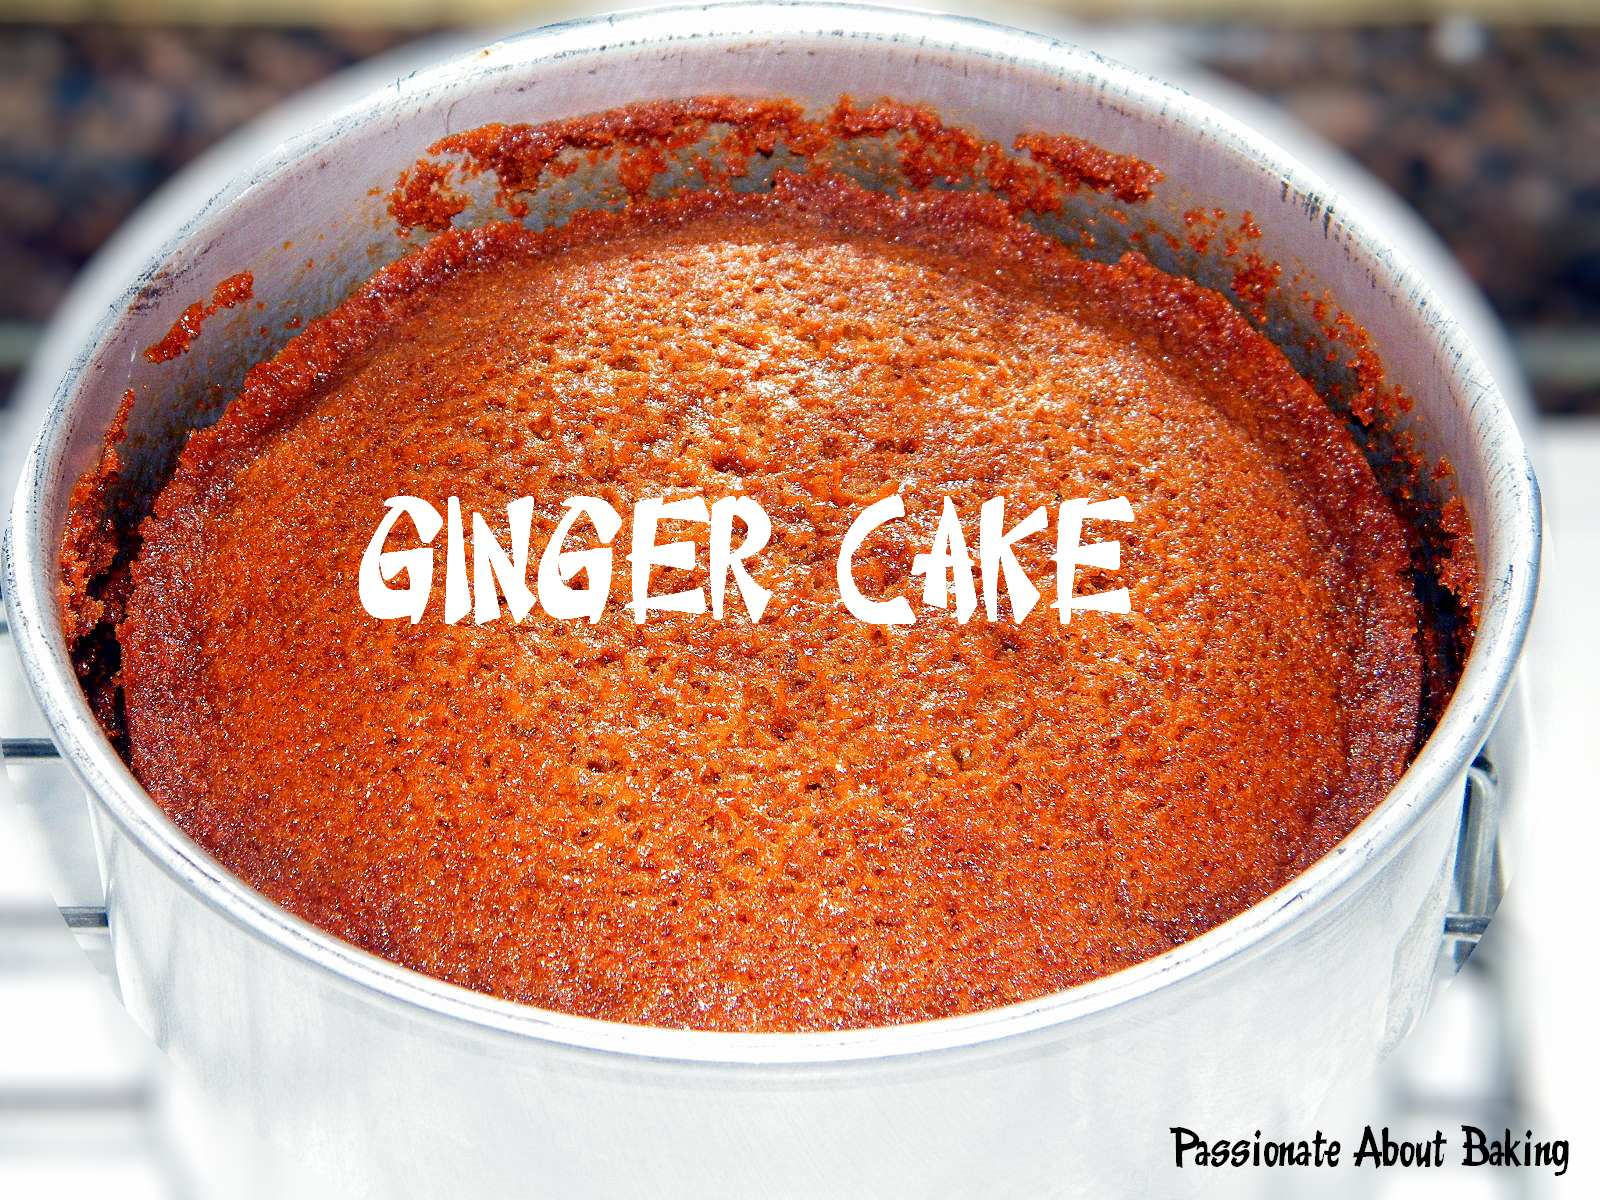 Alleluya Cafe's Ginger Cake   Passionate About Baking